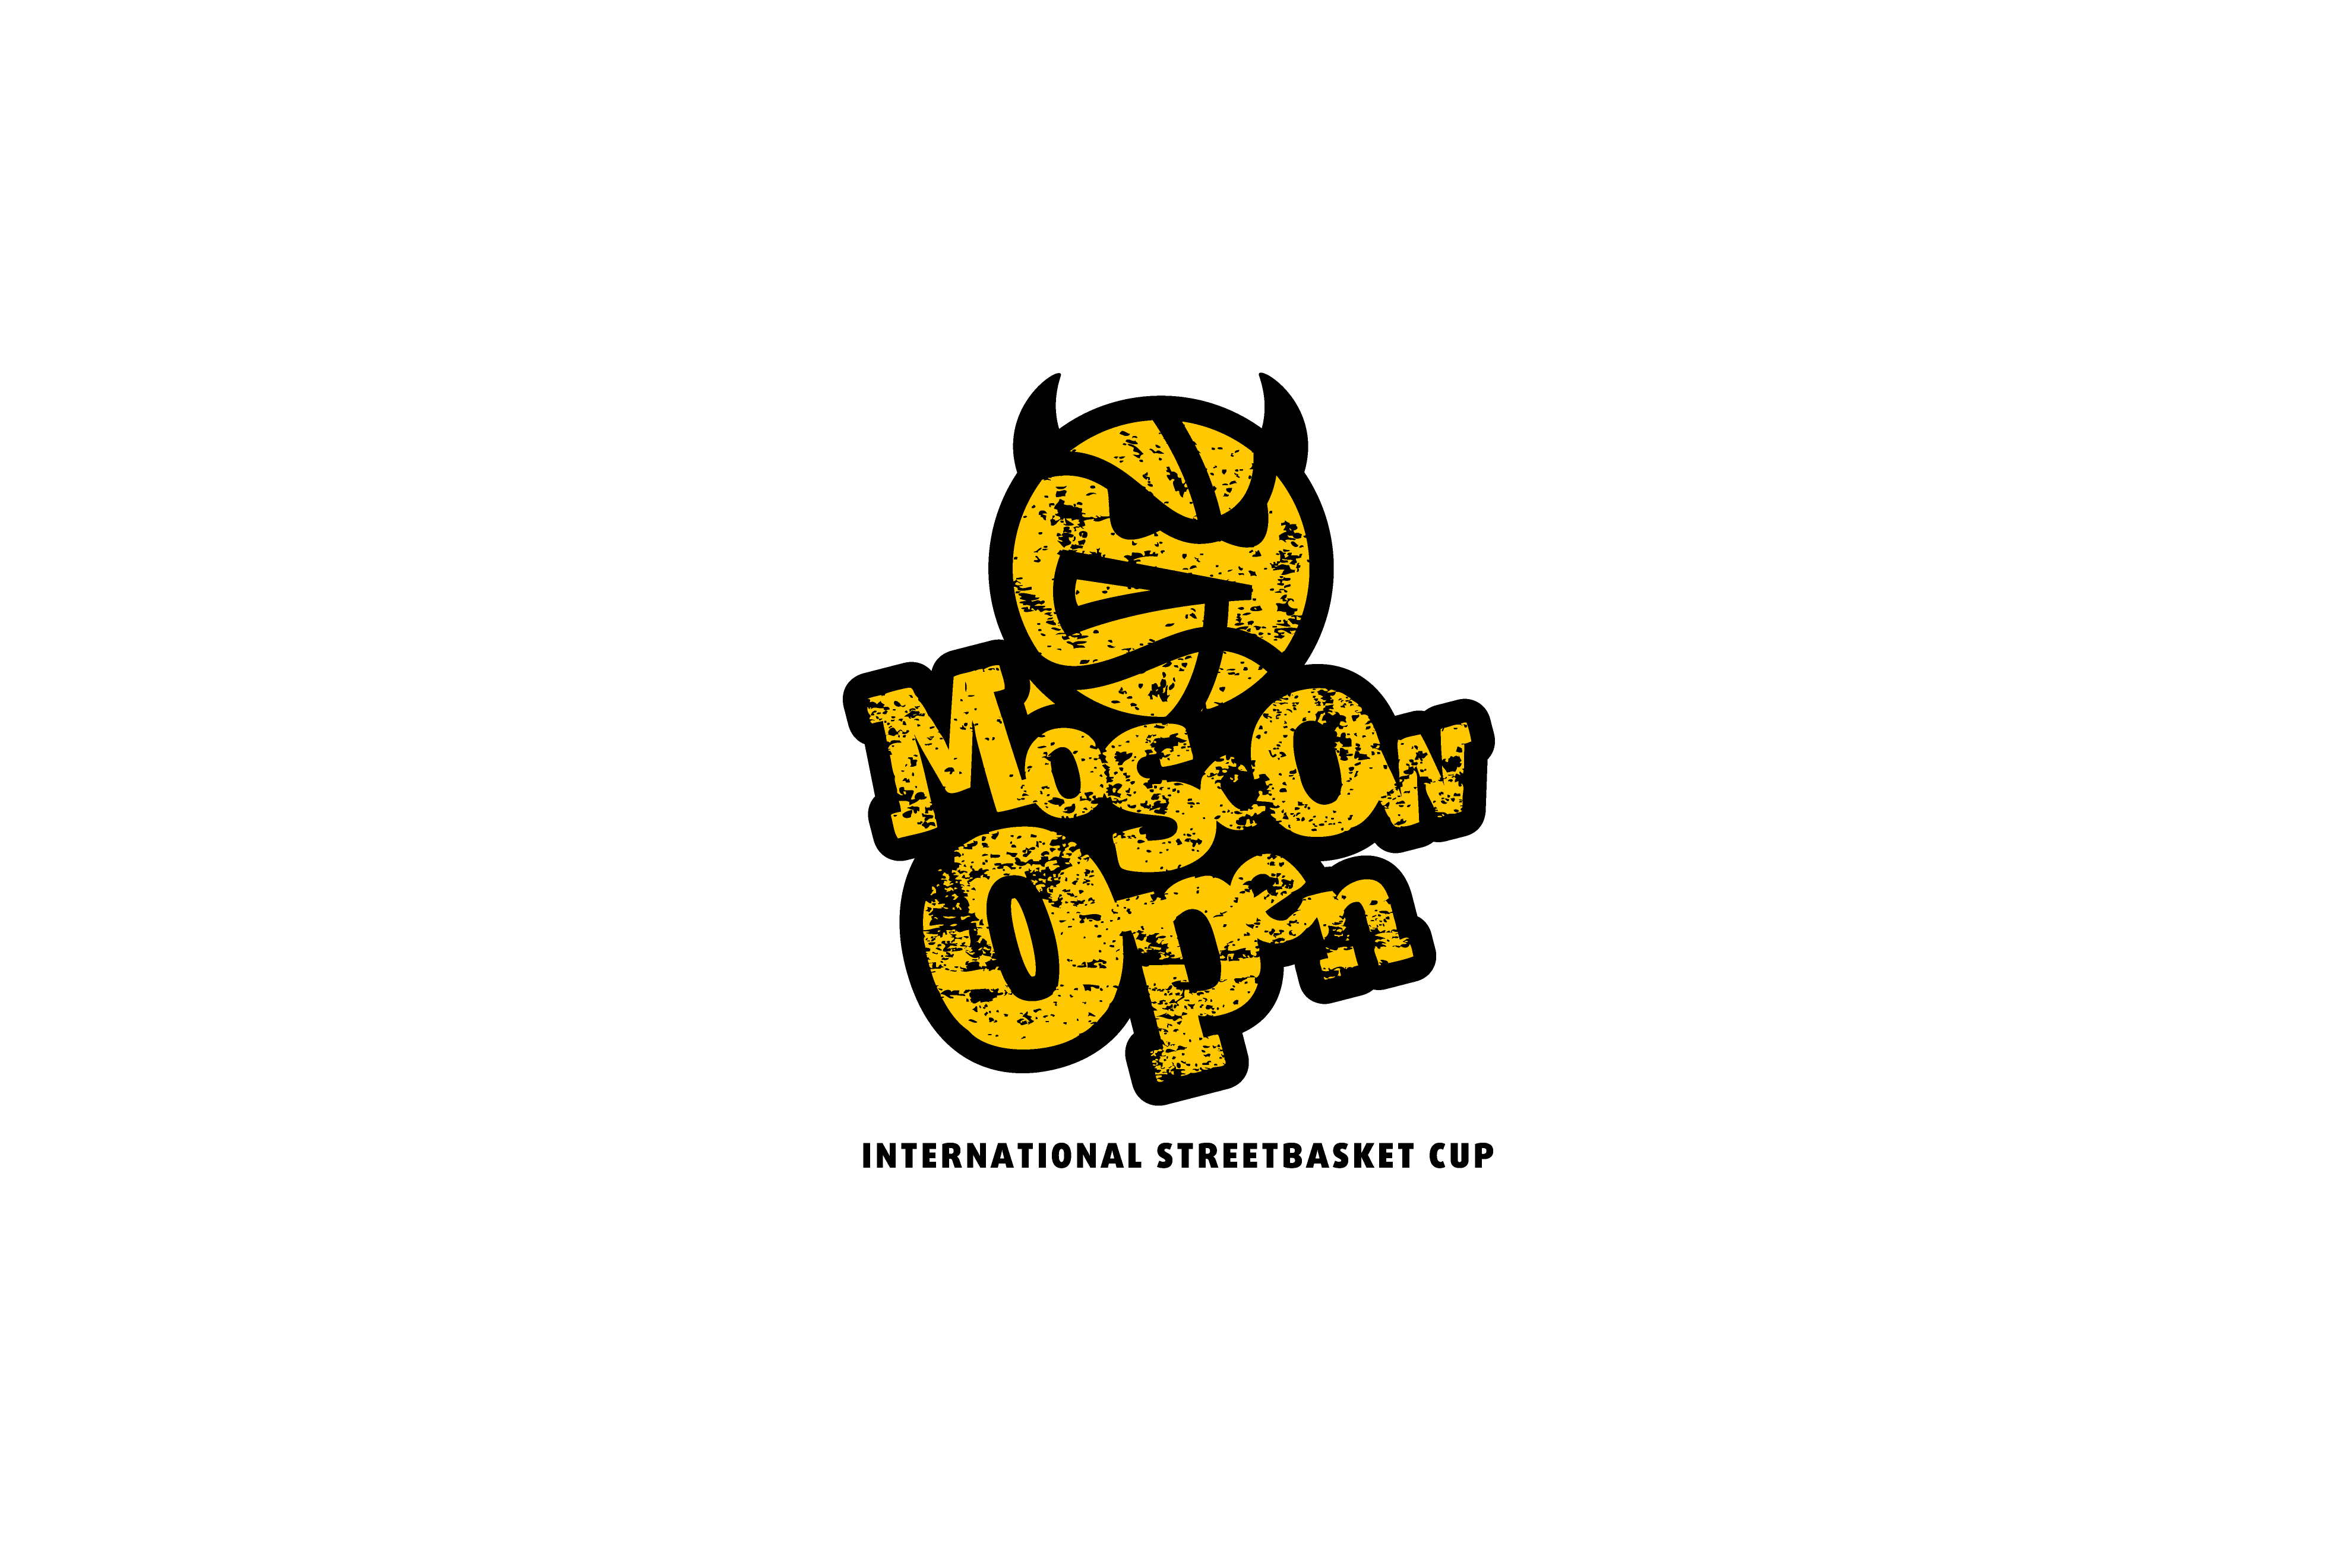 Moscow Open